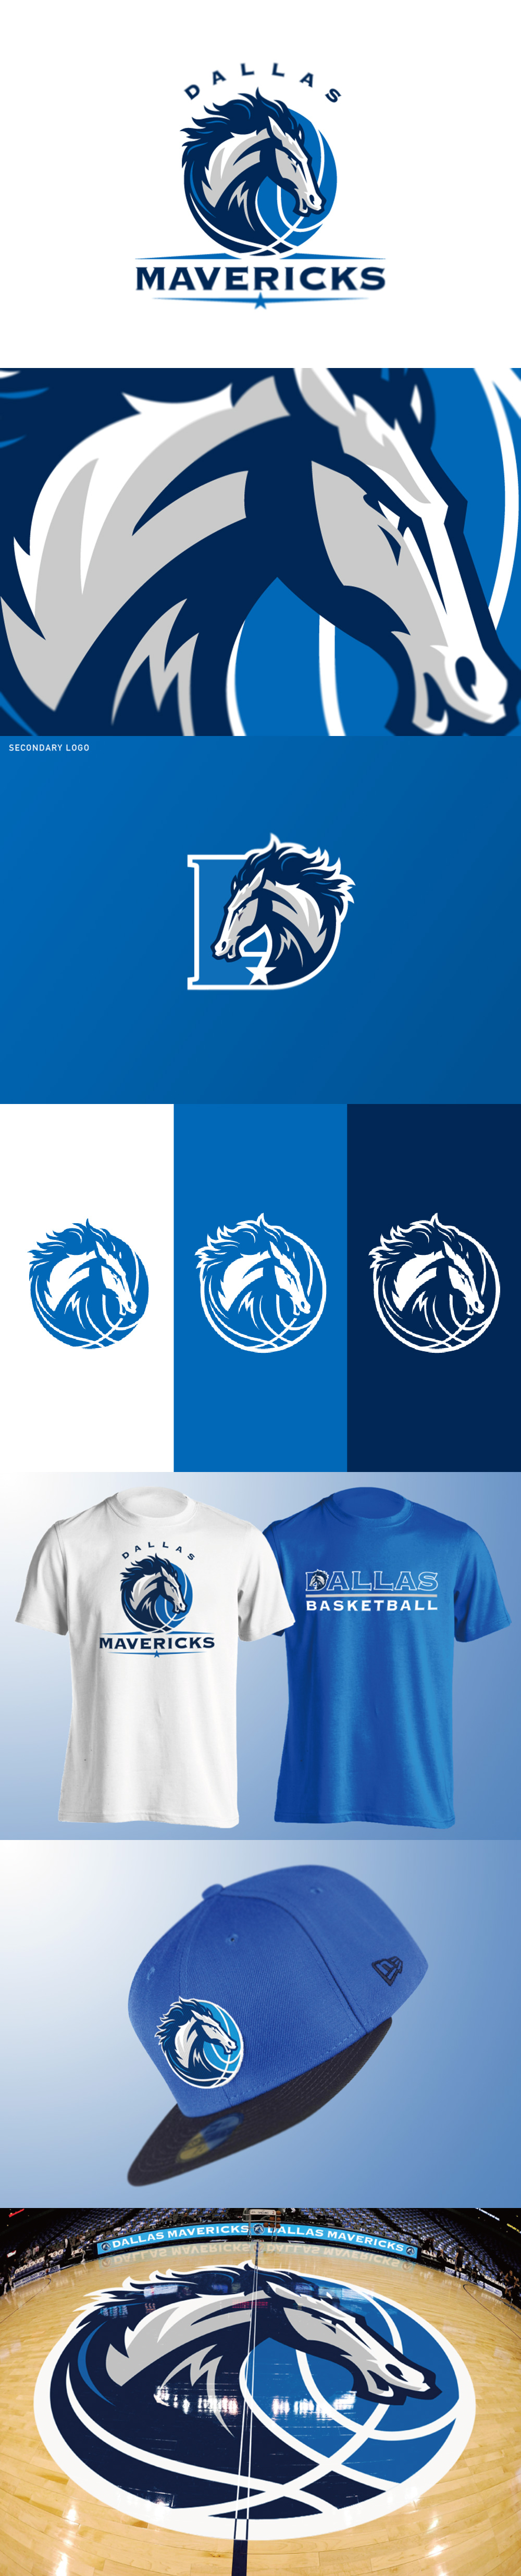 Basketball Team Logo: Dallas Mavericks logo concept by Yu Masuda